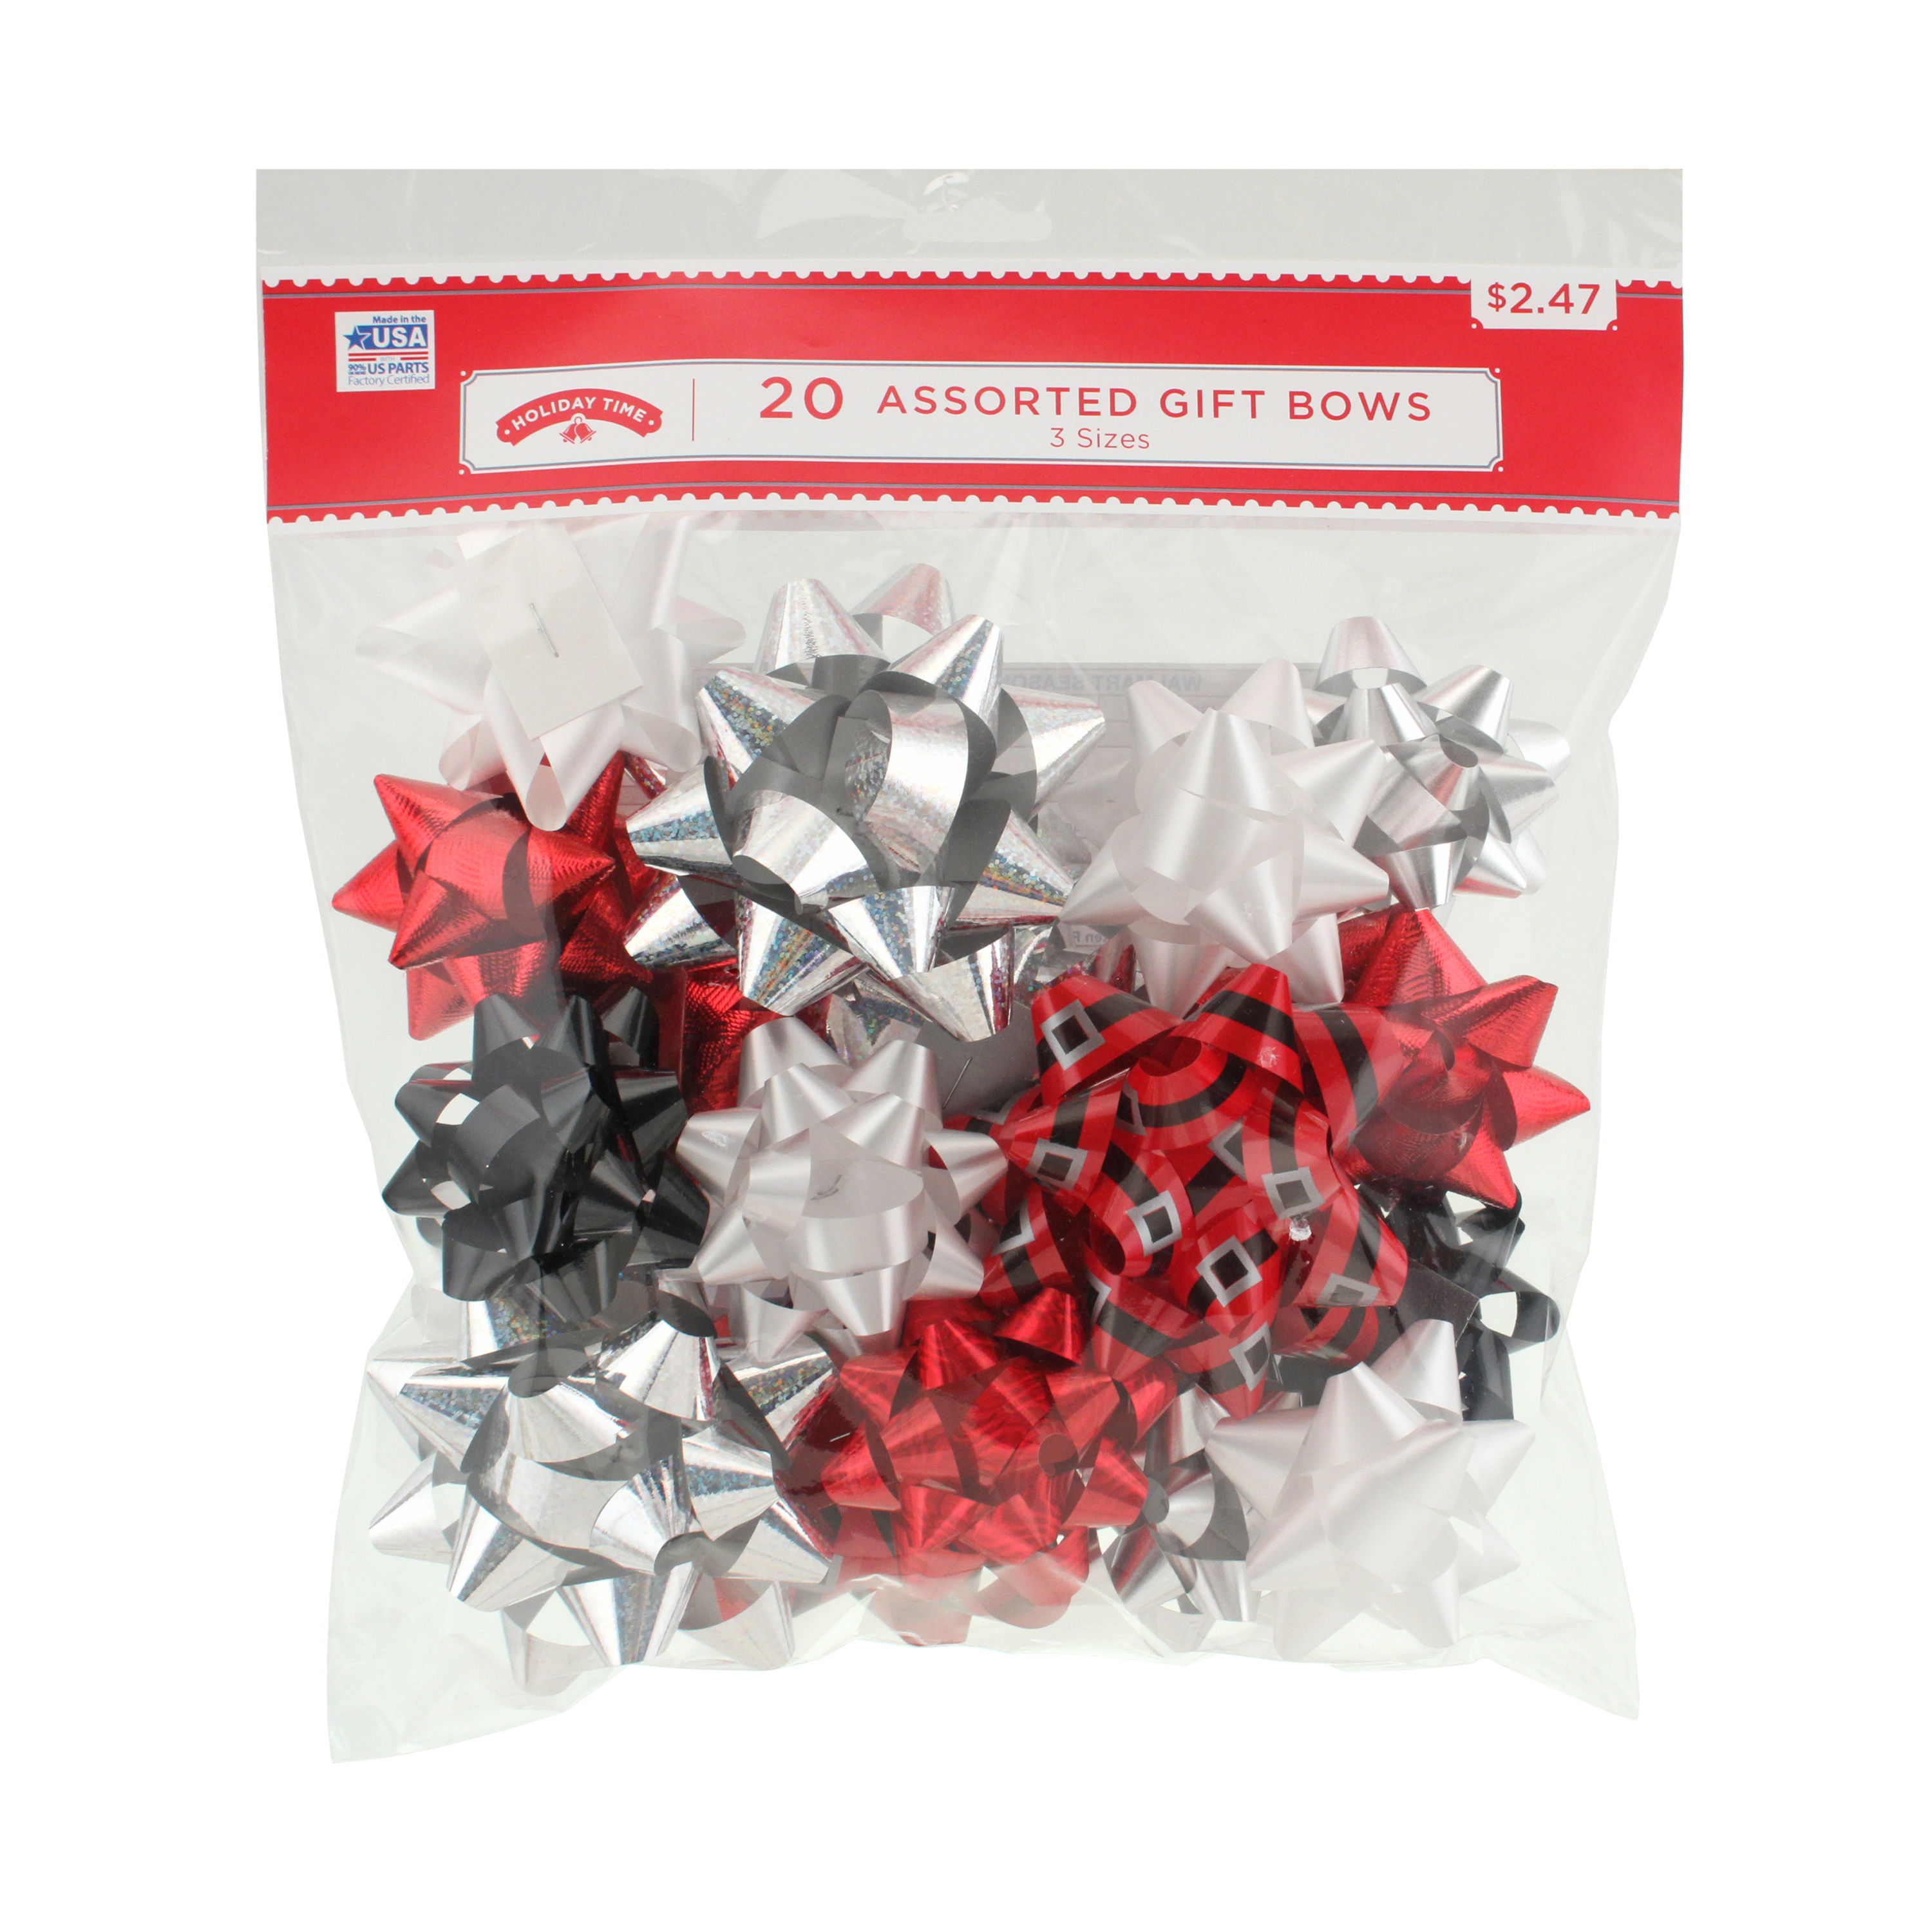 20 COUNT GIFT BOW ASSORTMENT - RED/WHITE/SILVER